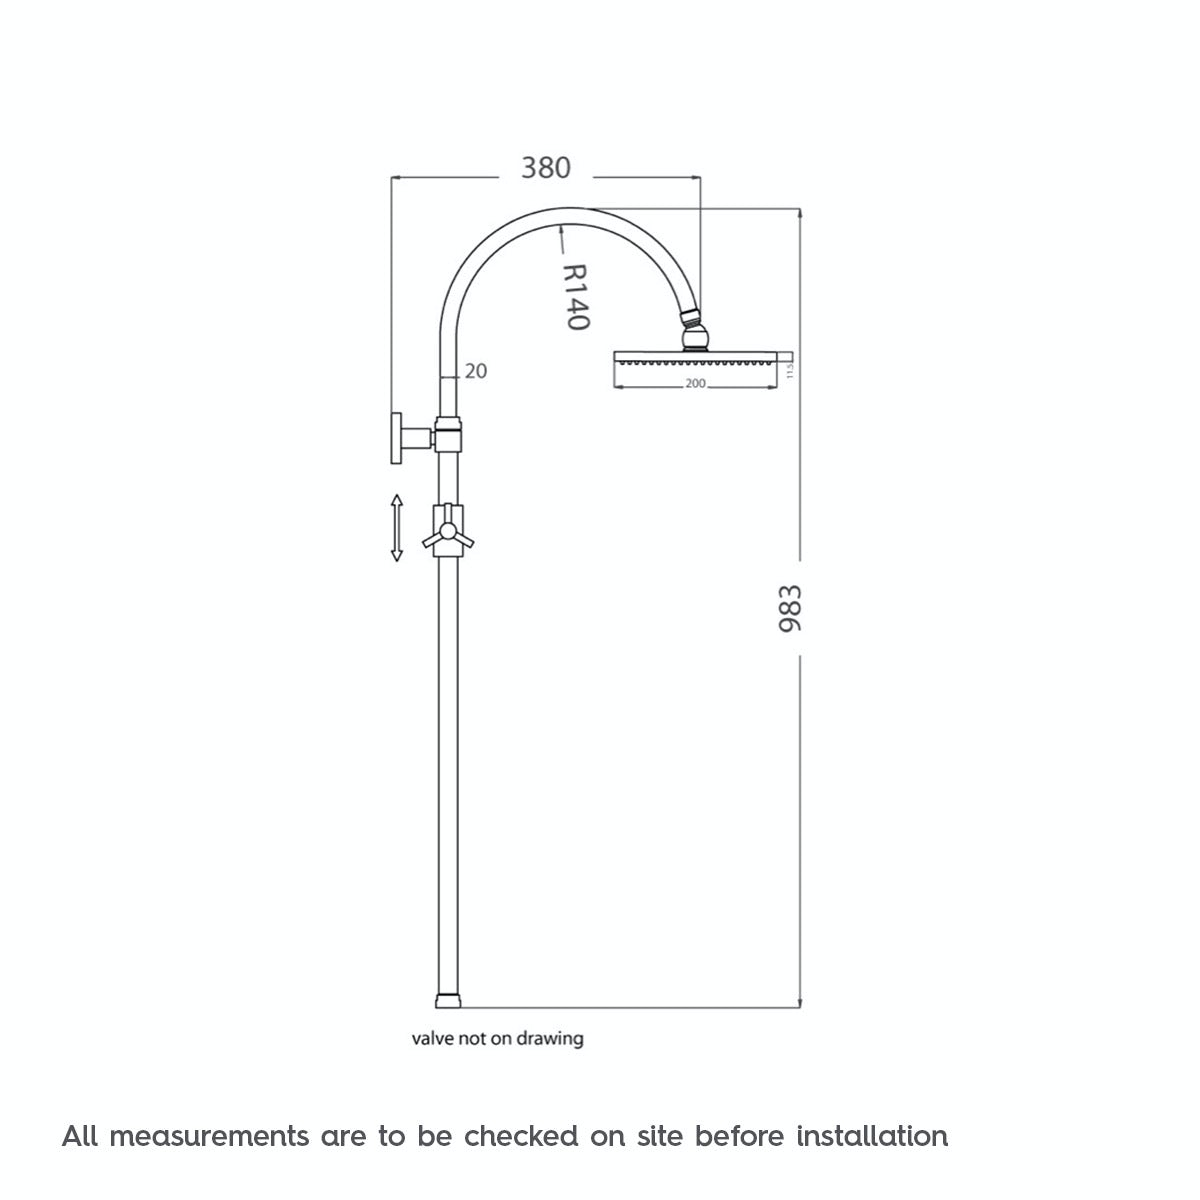 Dimensions for Matrix round shower riser system